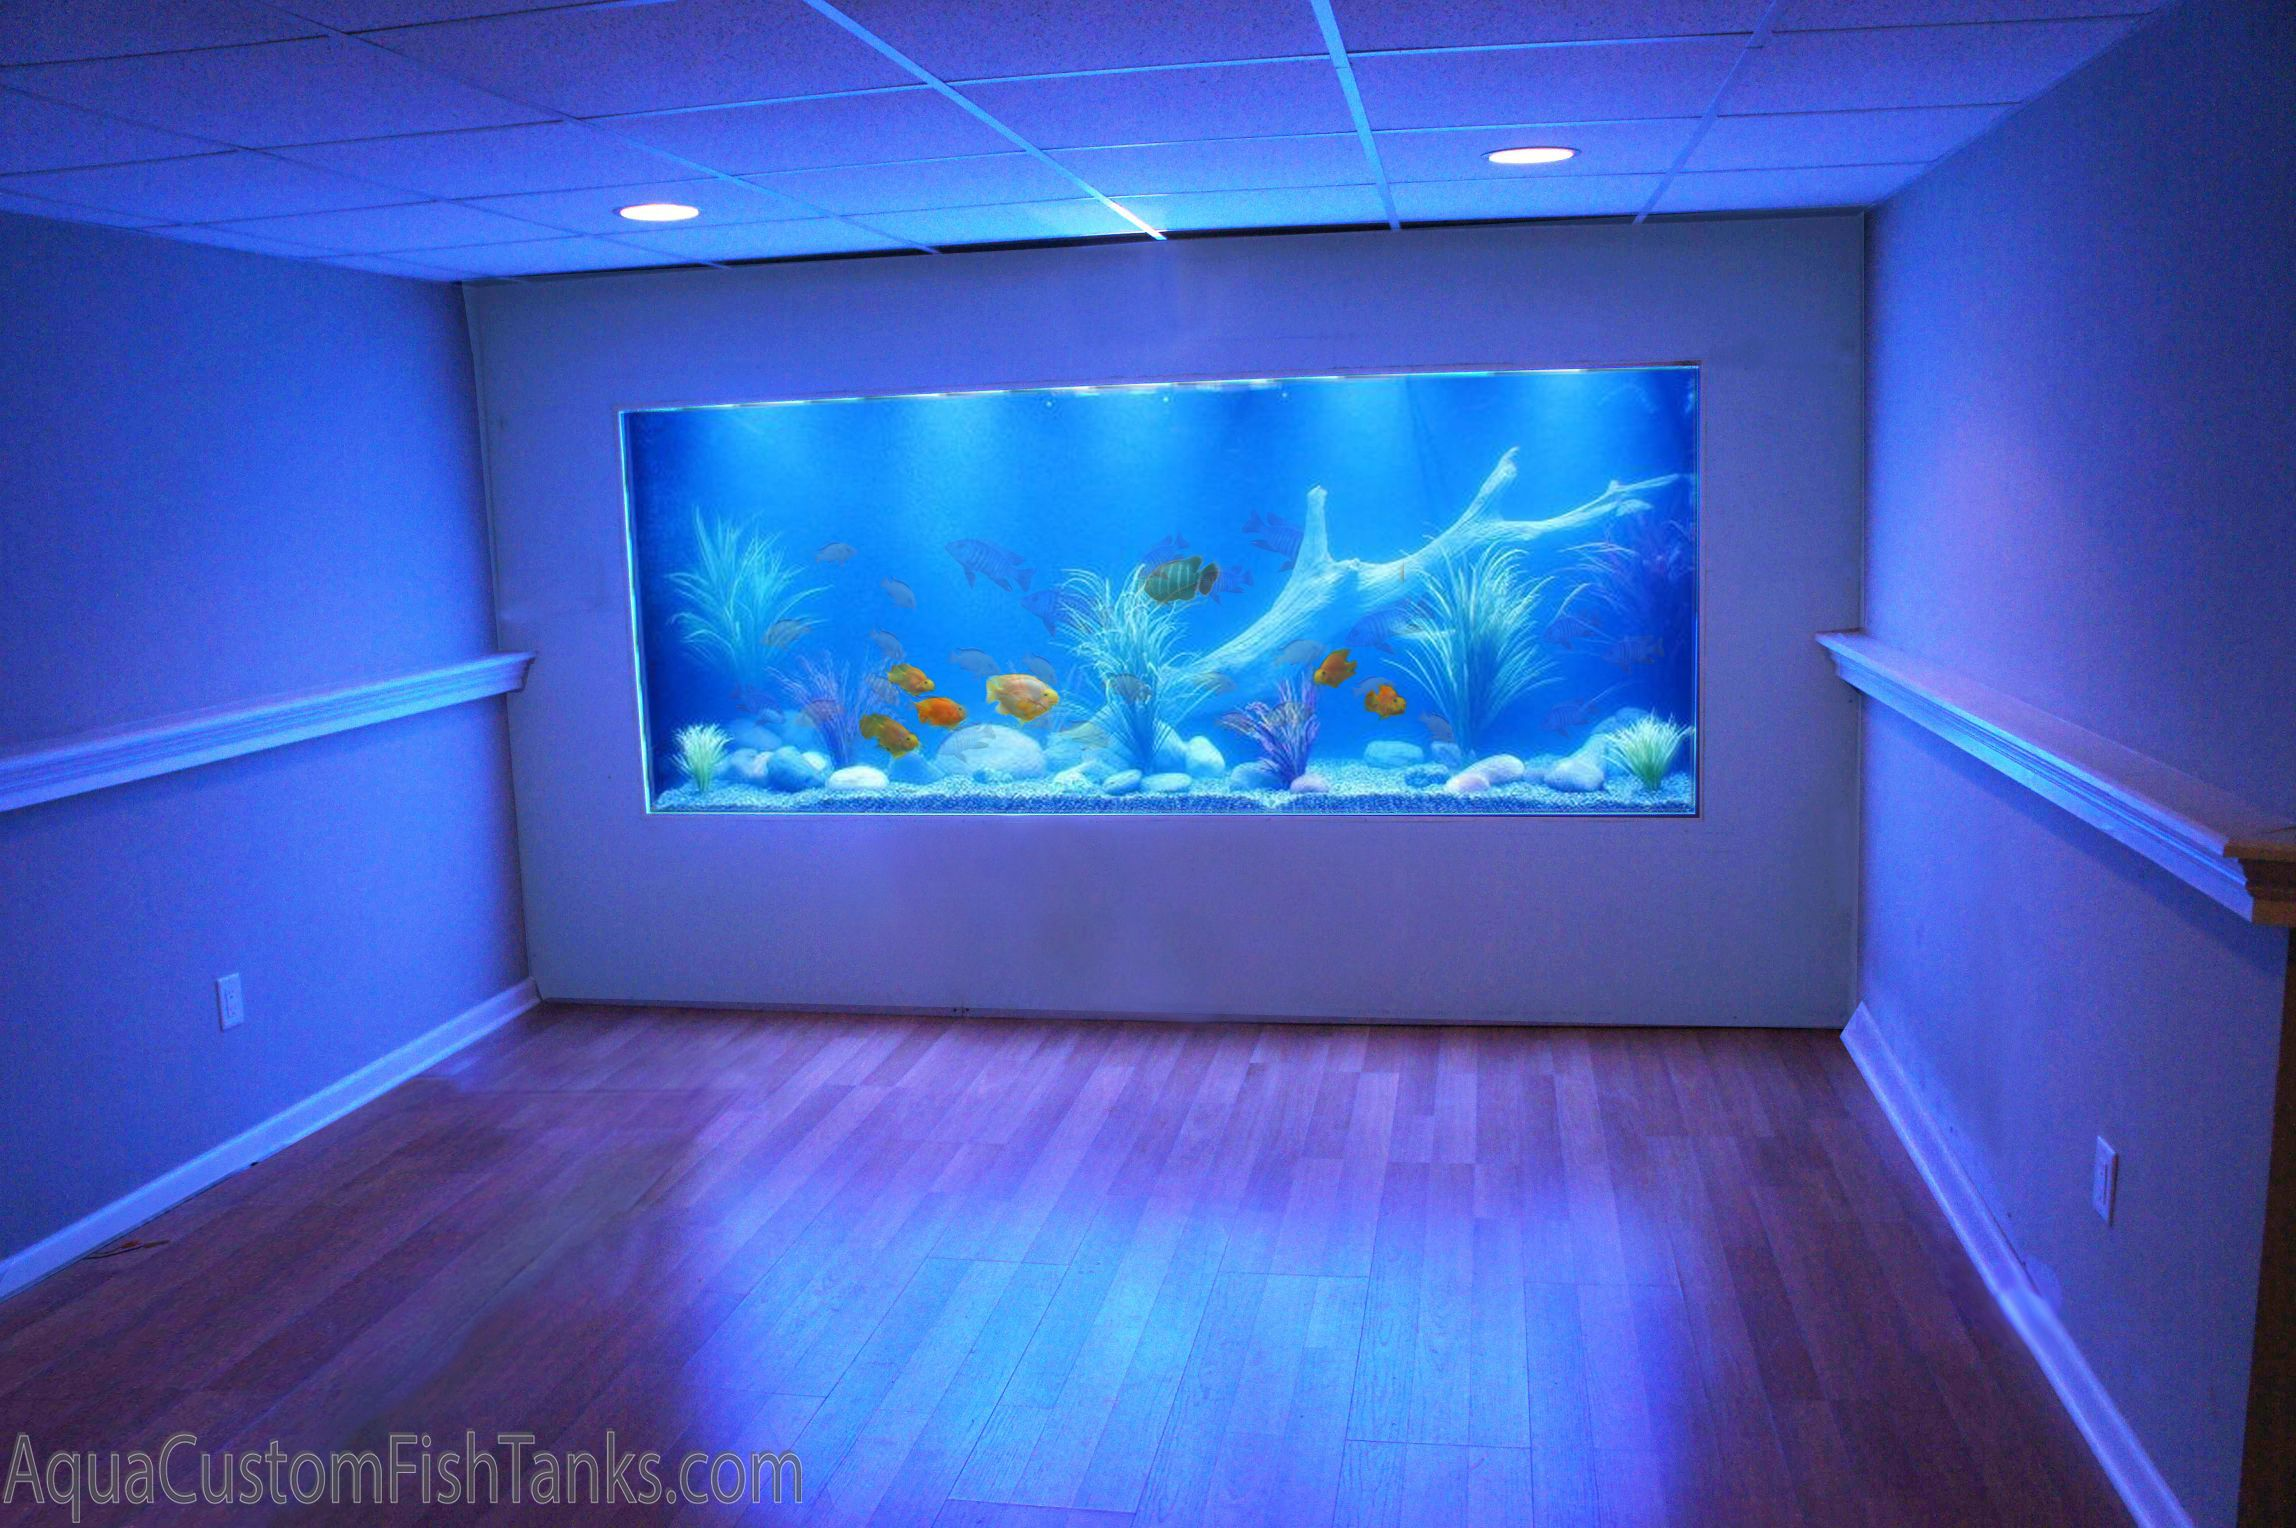 Fish aquarium bed frame - Aqua Creations Custom Aquarium Wall Fish Tank Built Into The Wall Of A Residential Family